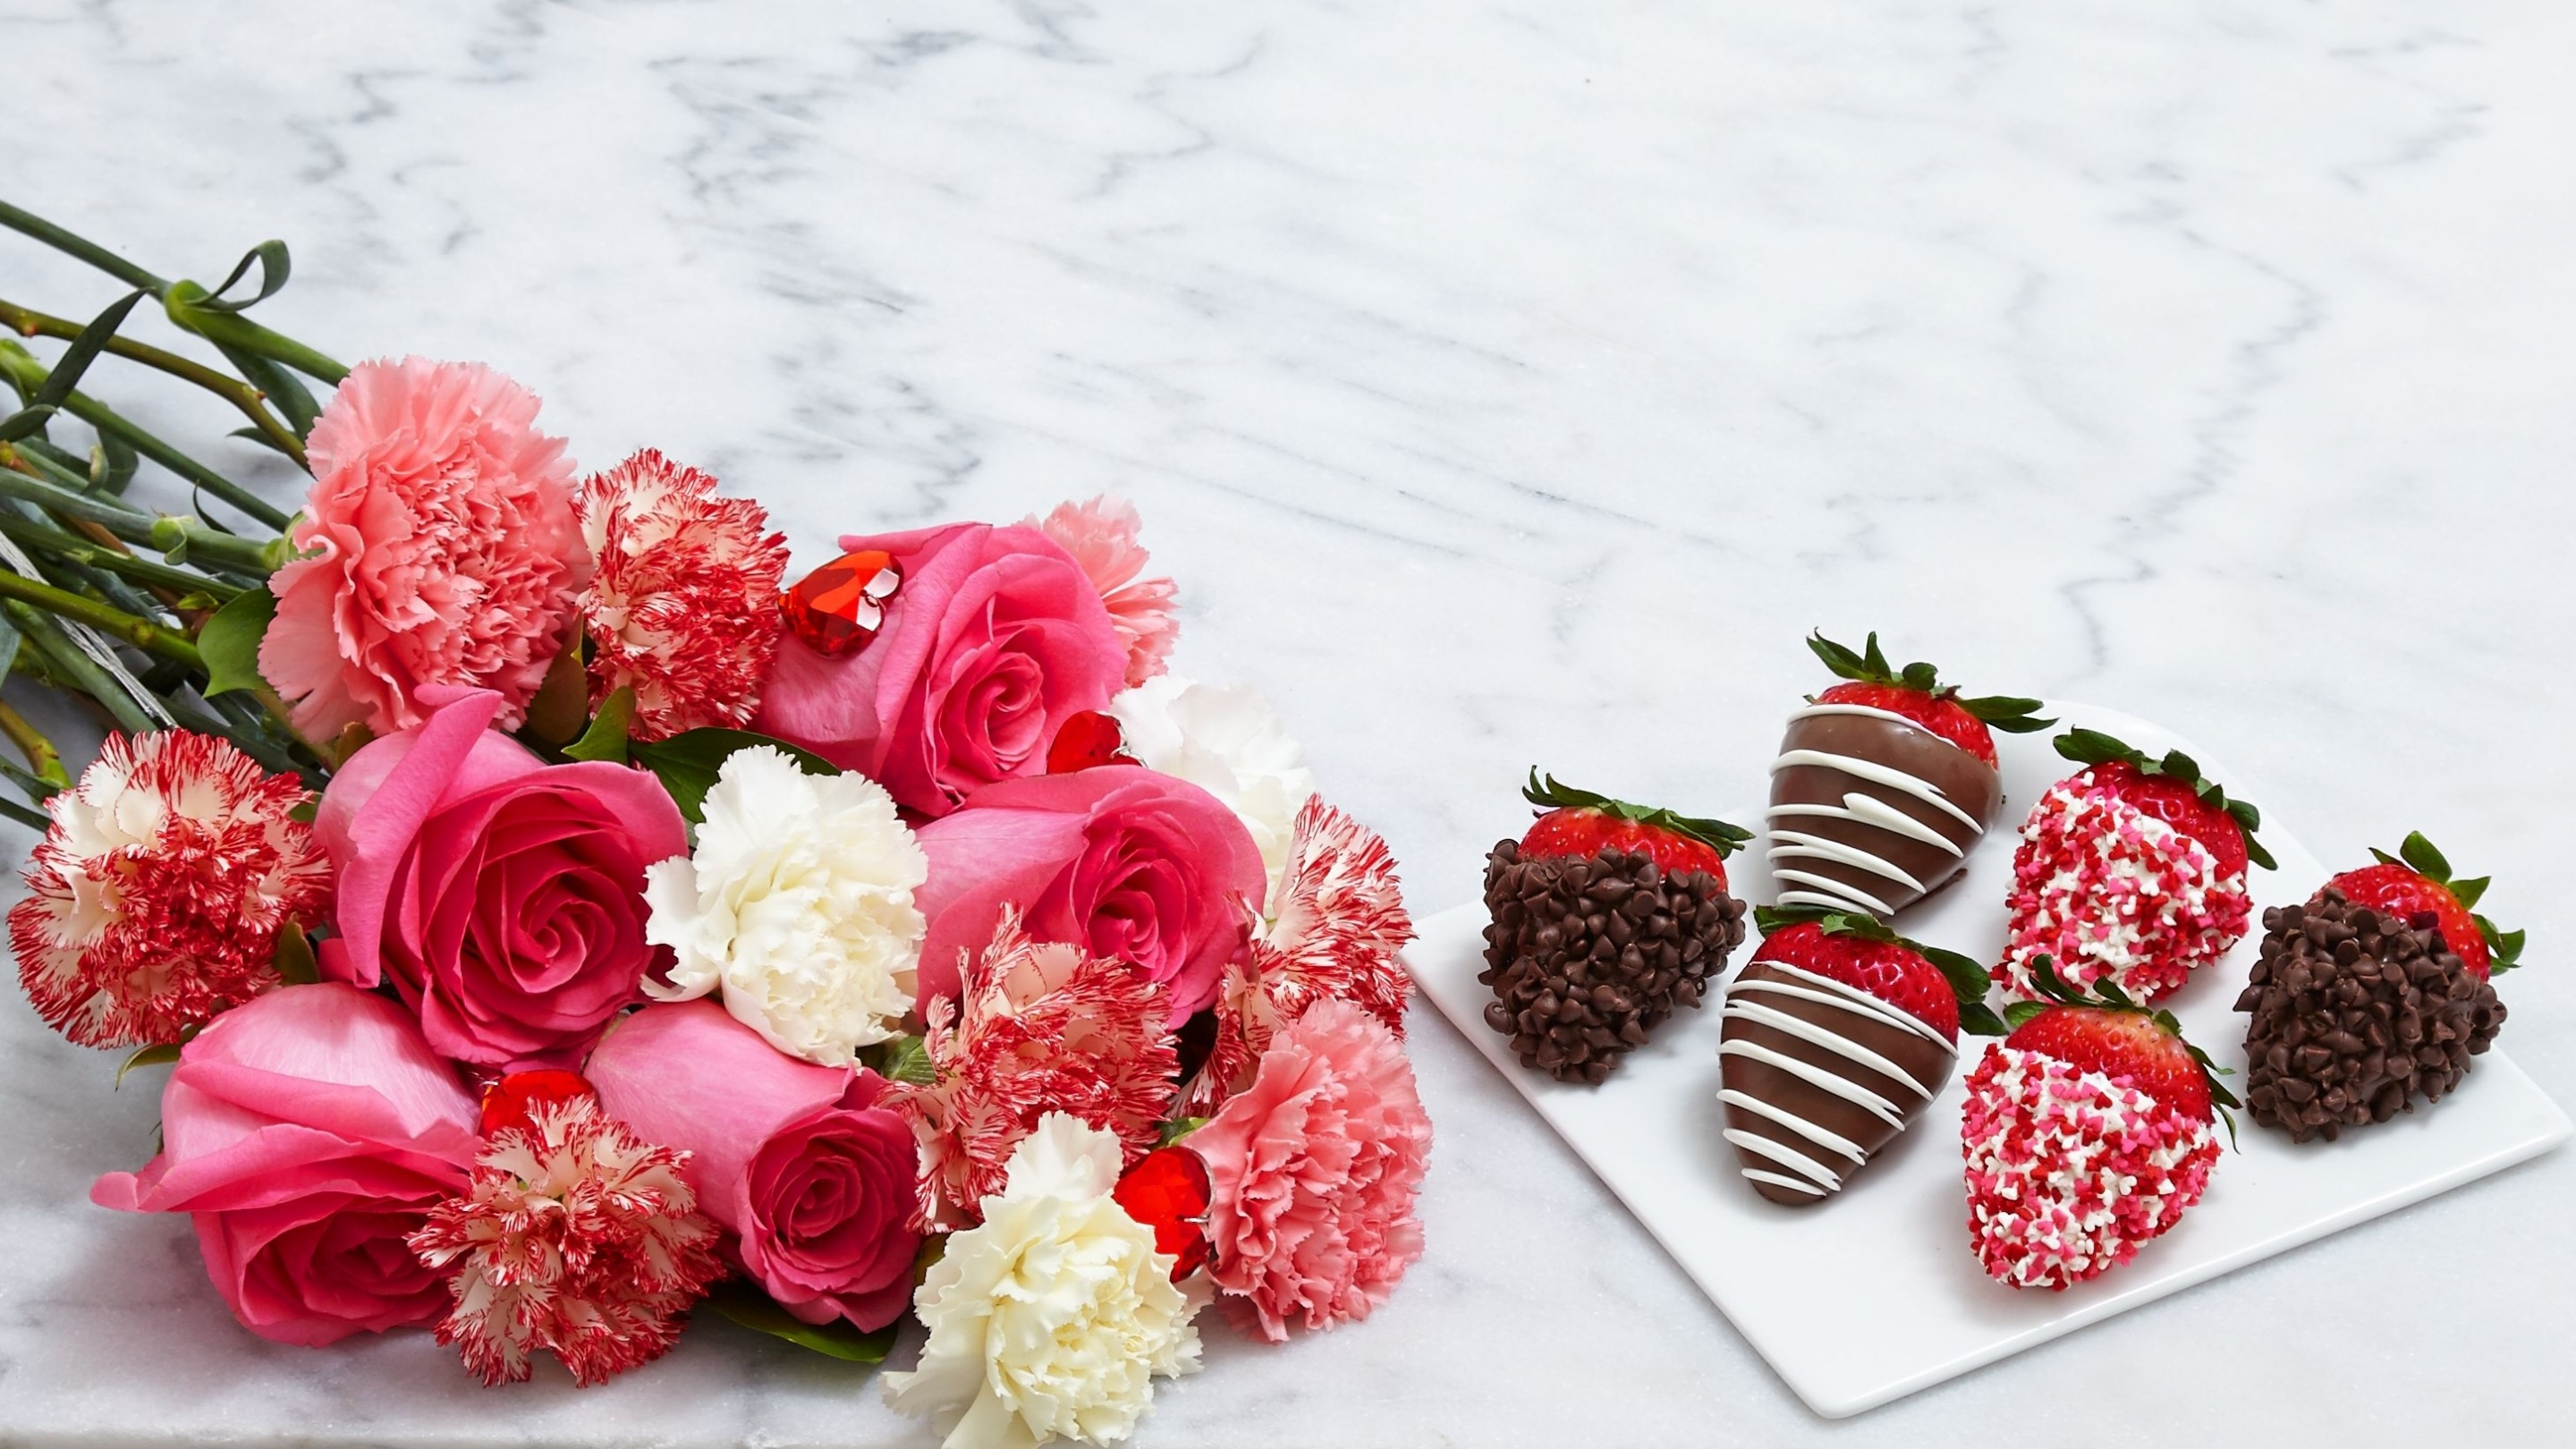 chocolate_dipped_strawberries_and_flowers-wallpaper-2880x1620